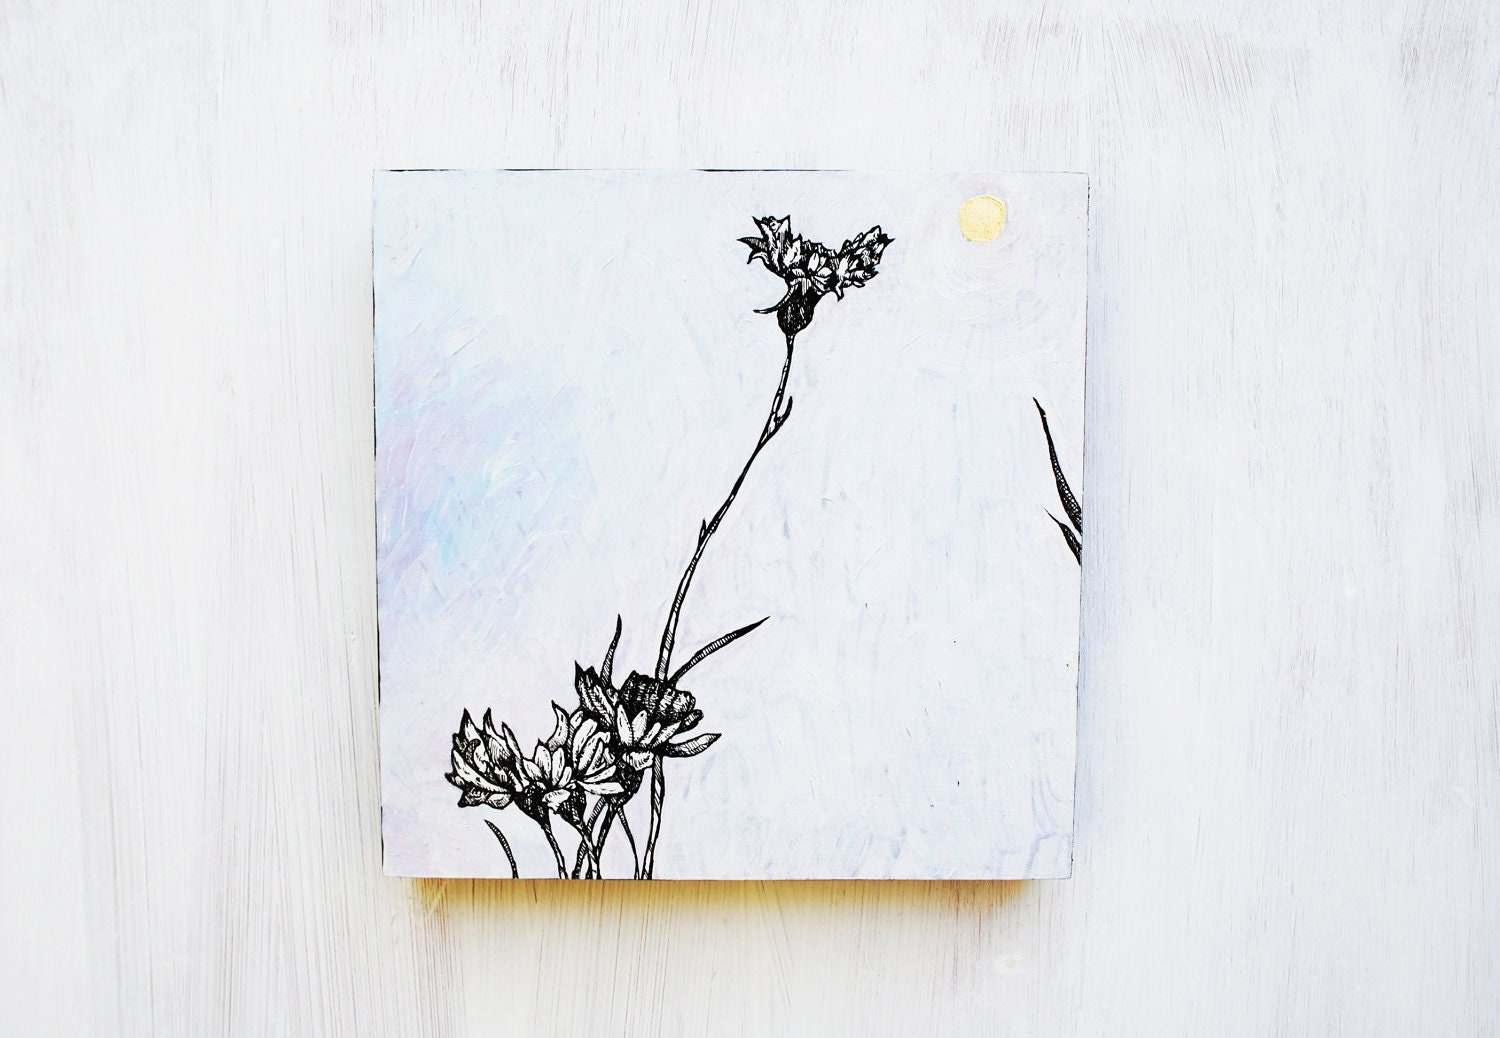 Bachelor's Buttons - Wild Flower Field Study Painting - Original Art - 6x6  Wall Art.  White.  Home Decor.  Drawing.  Square.  Woodland. - SorchaMoon